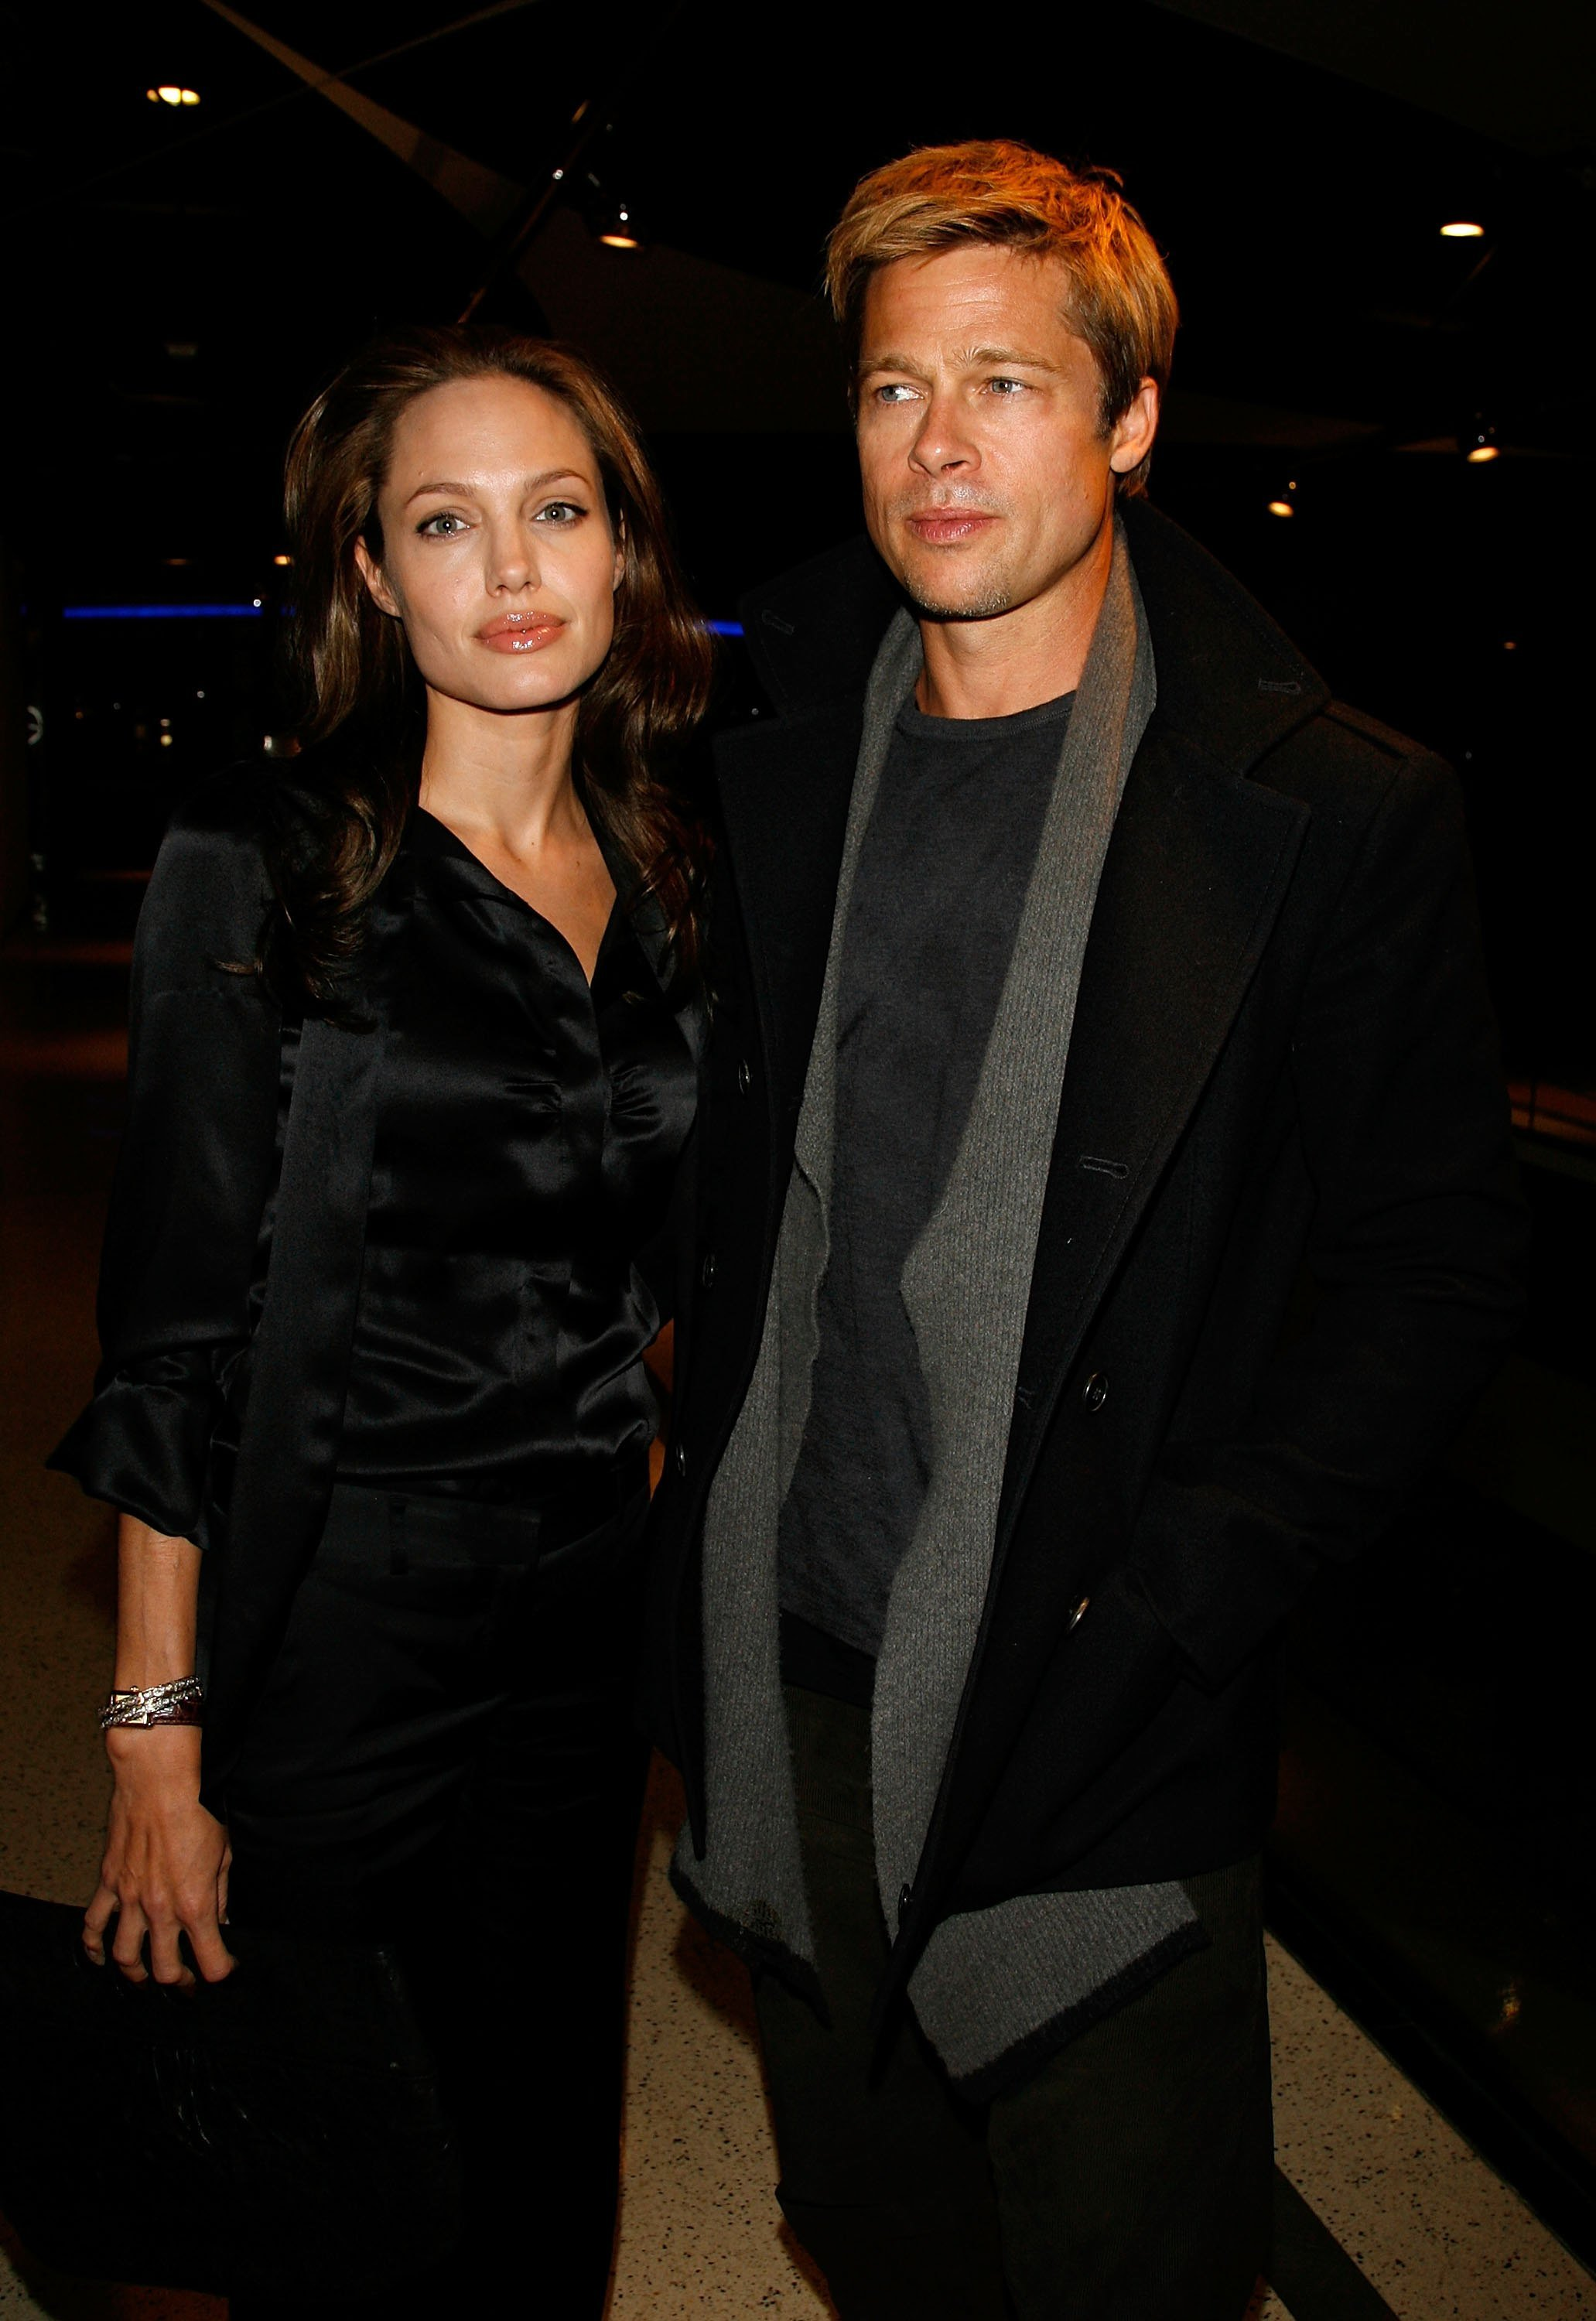 Angelina Jolie and Brad Pitt. I Image: Getty Images.